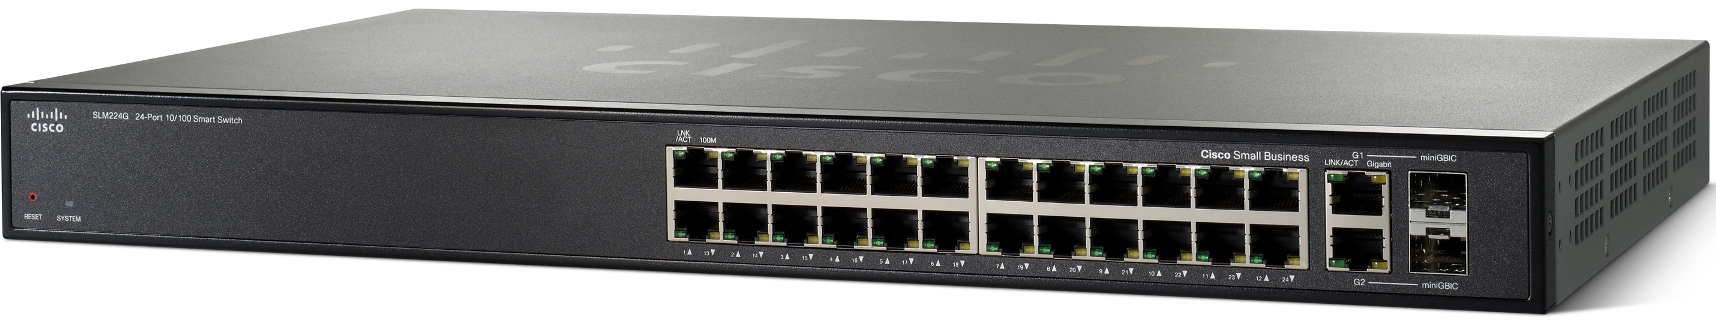 Cisco SF200-24, 24x10/100, Smart, SLM224GT-EU